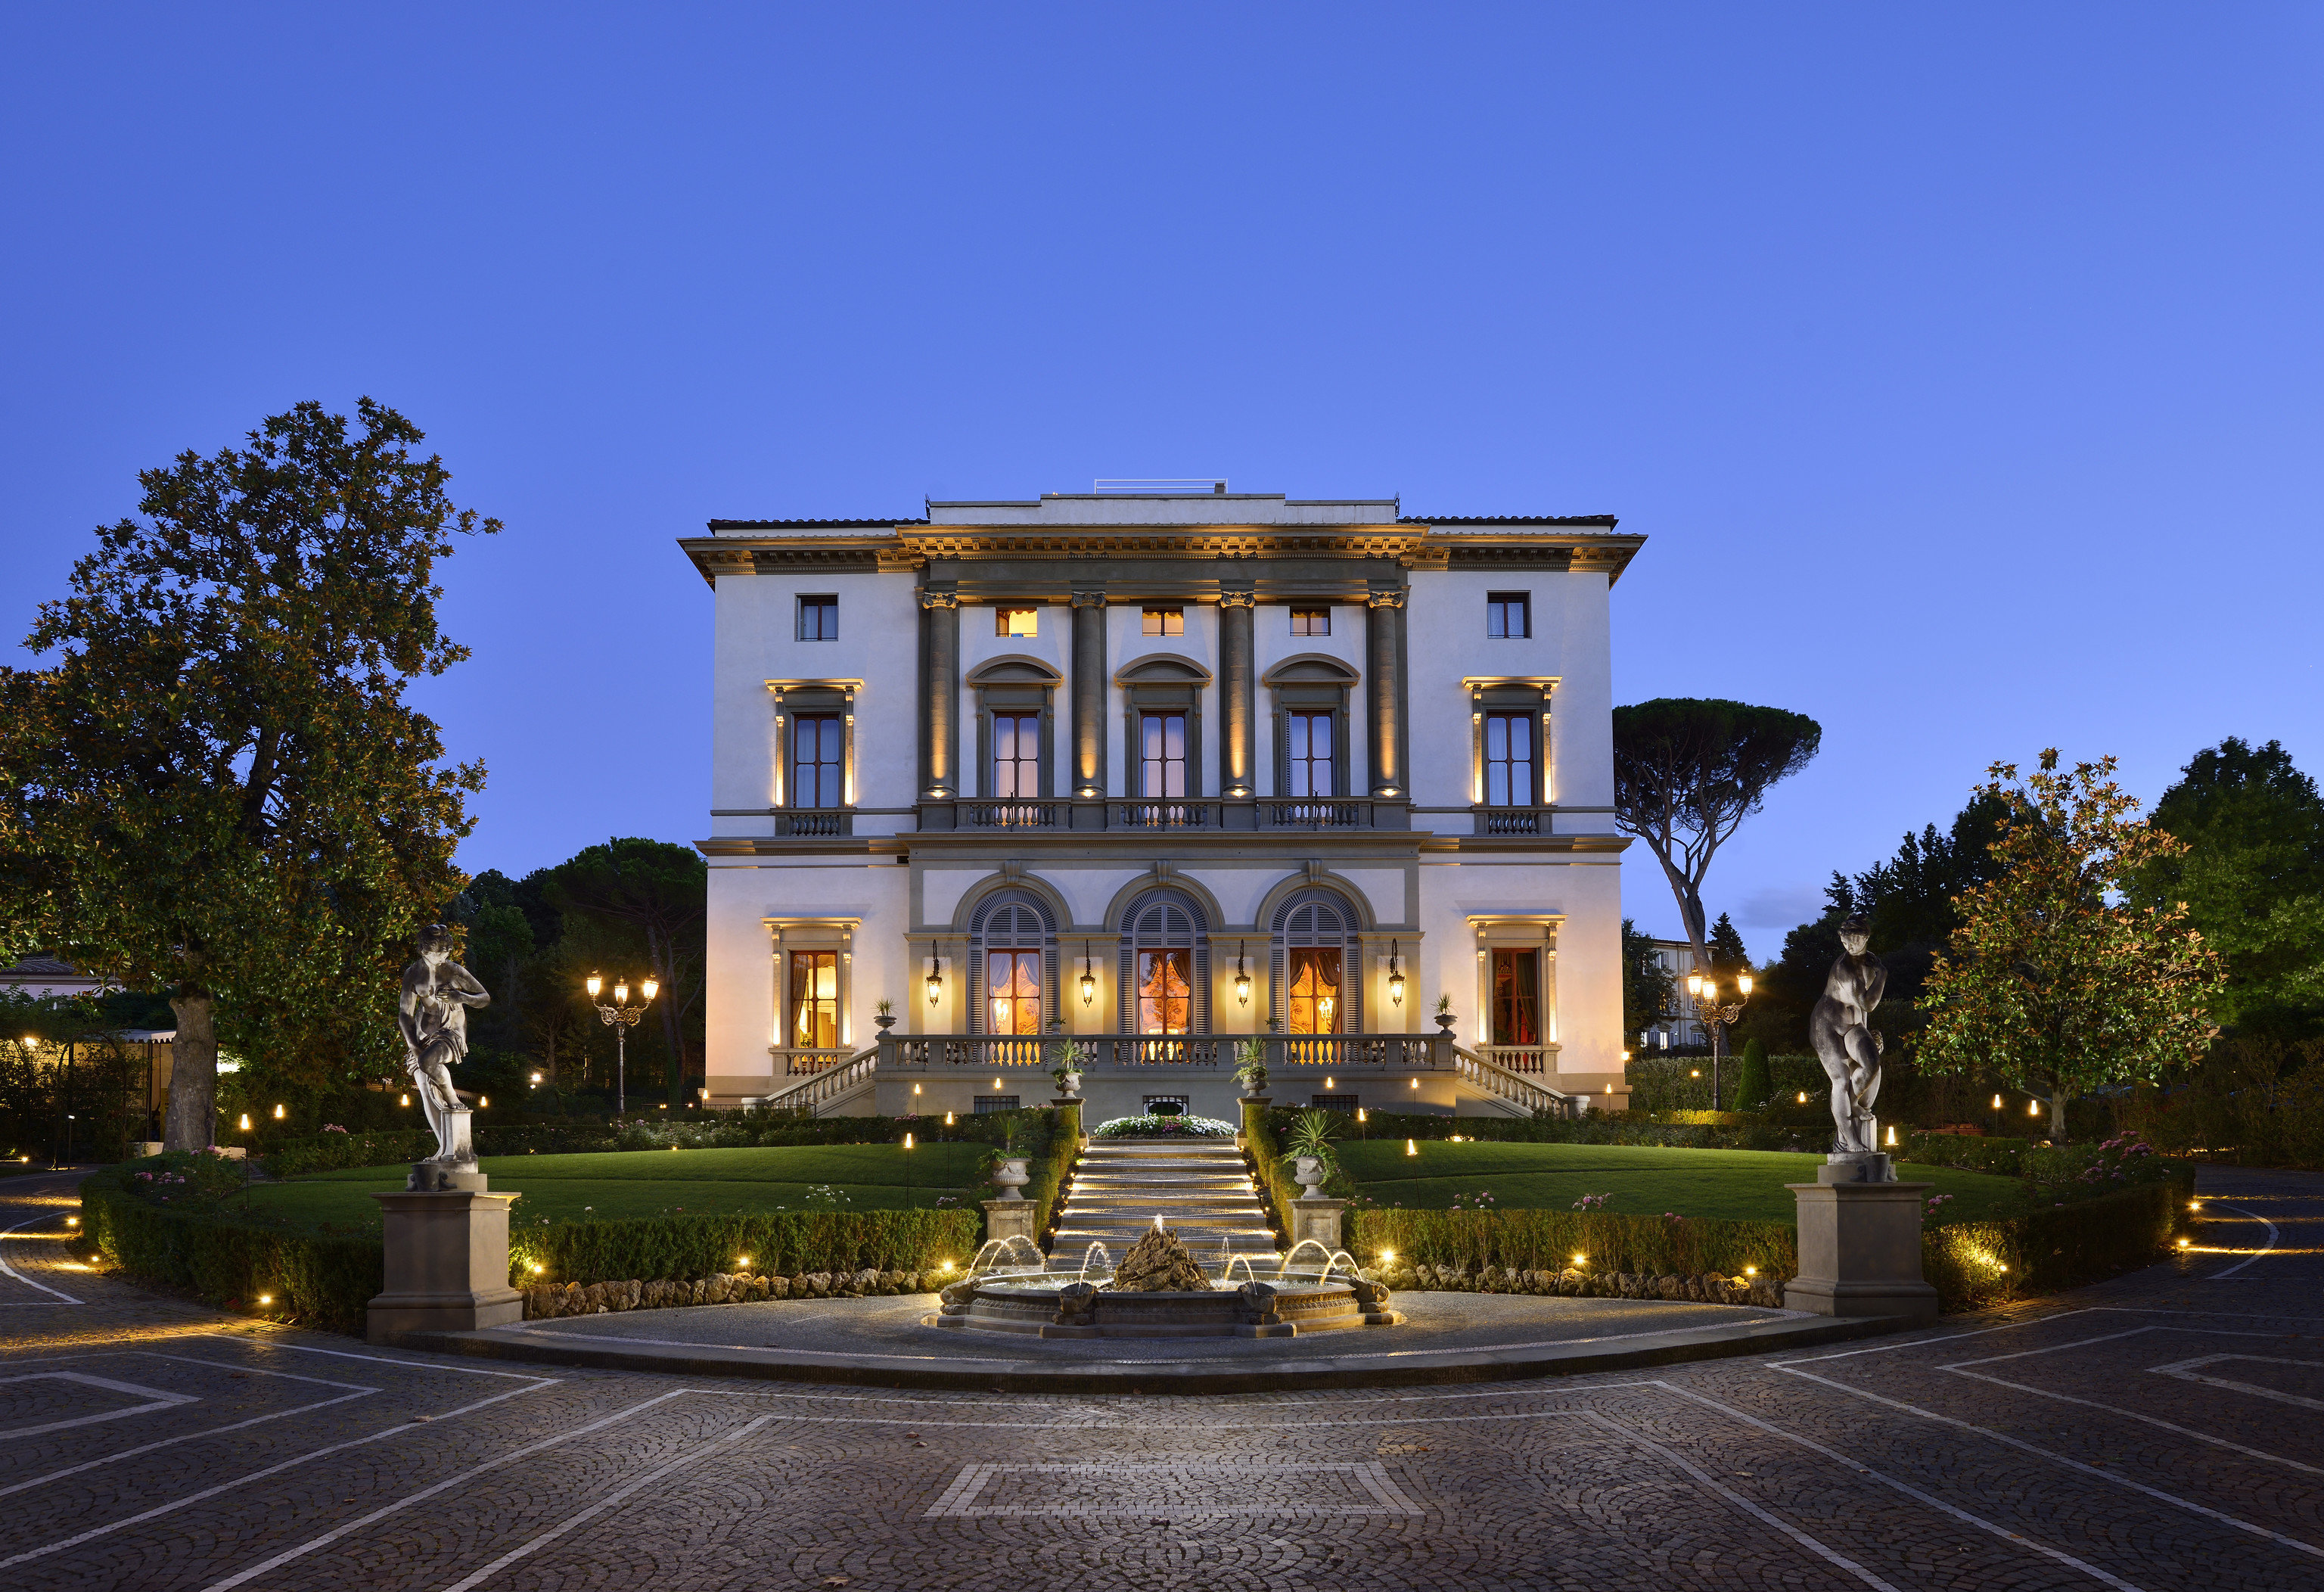 Florence Hotels Italy sky outdoor road landmark estate building house Architecture mansion home palace facade City stately home château plaza government building